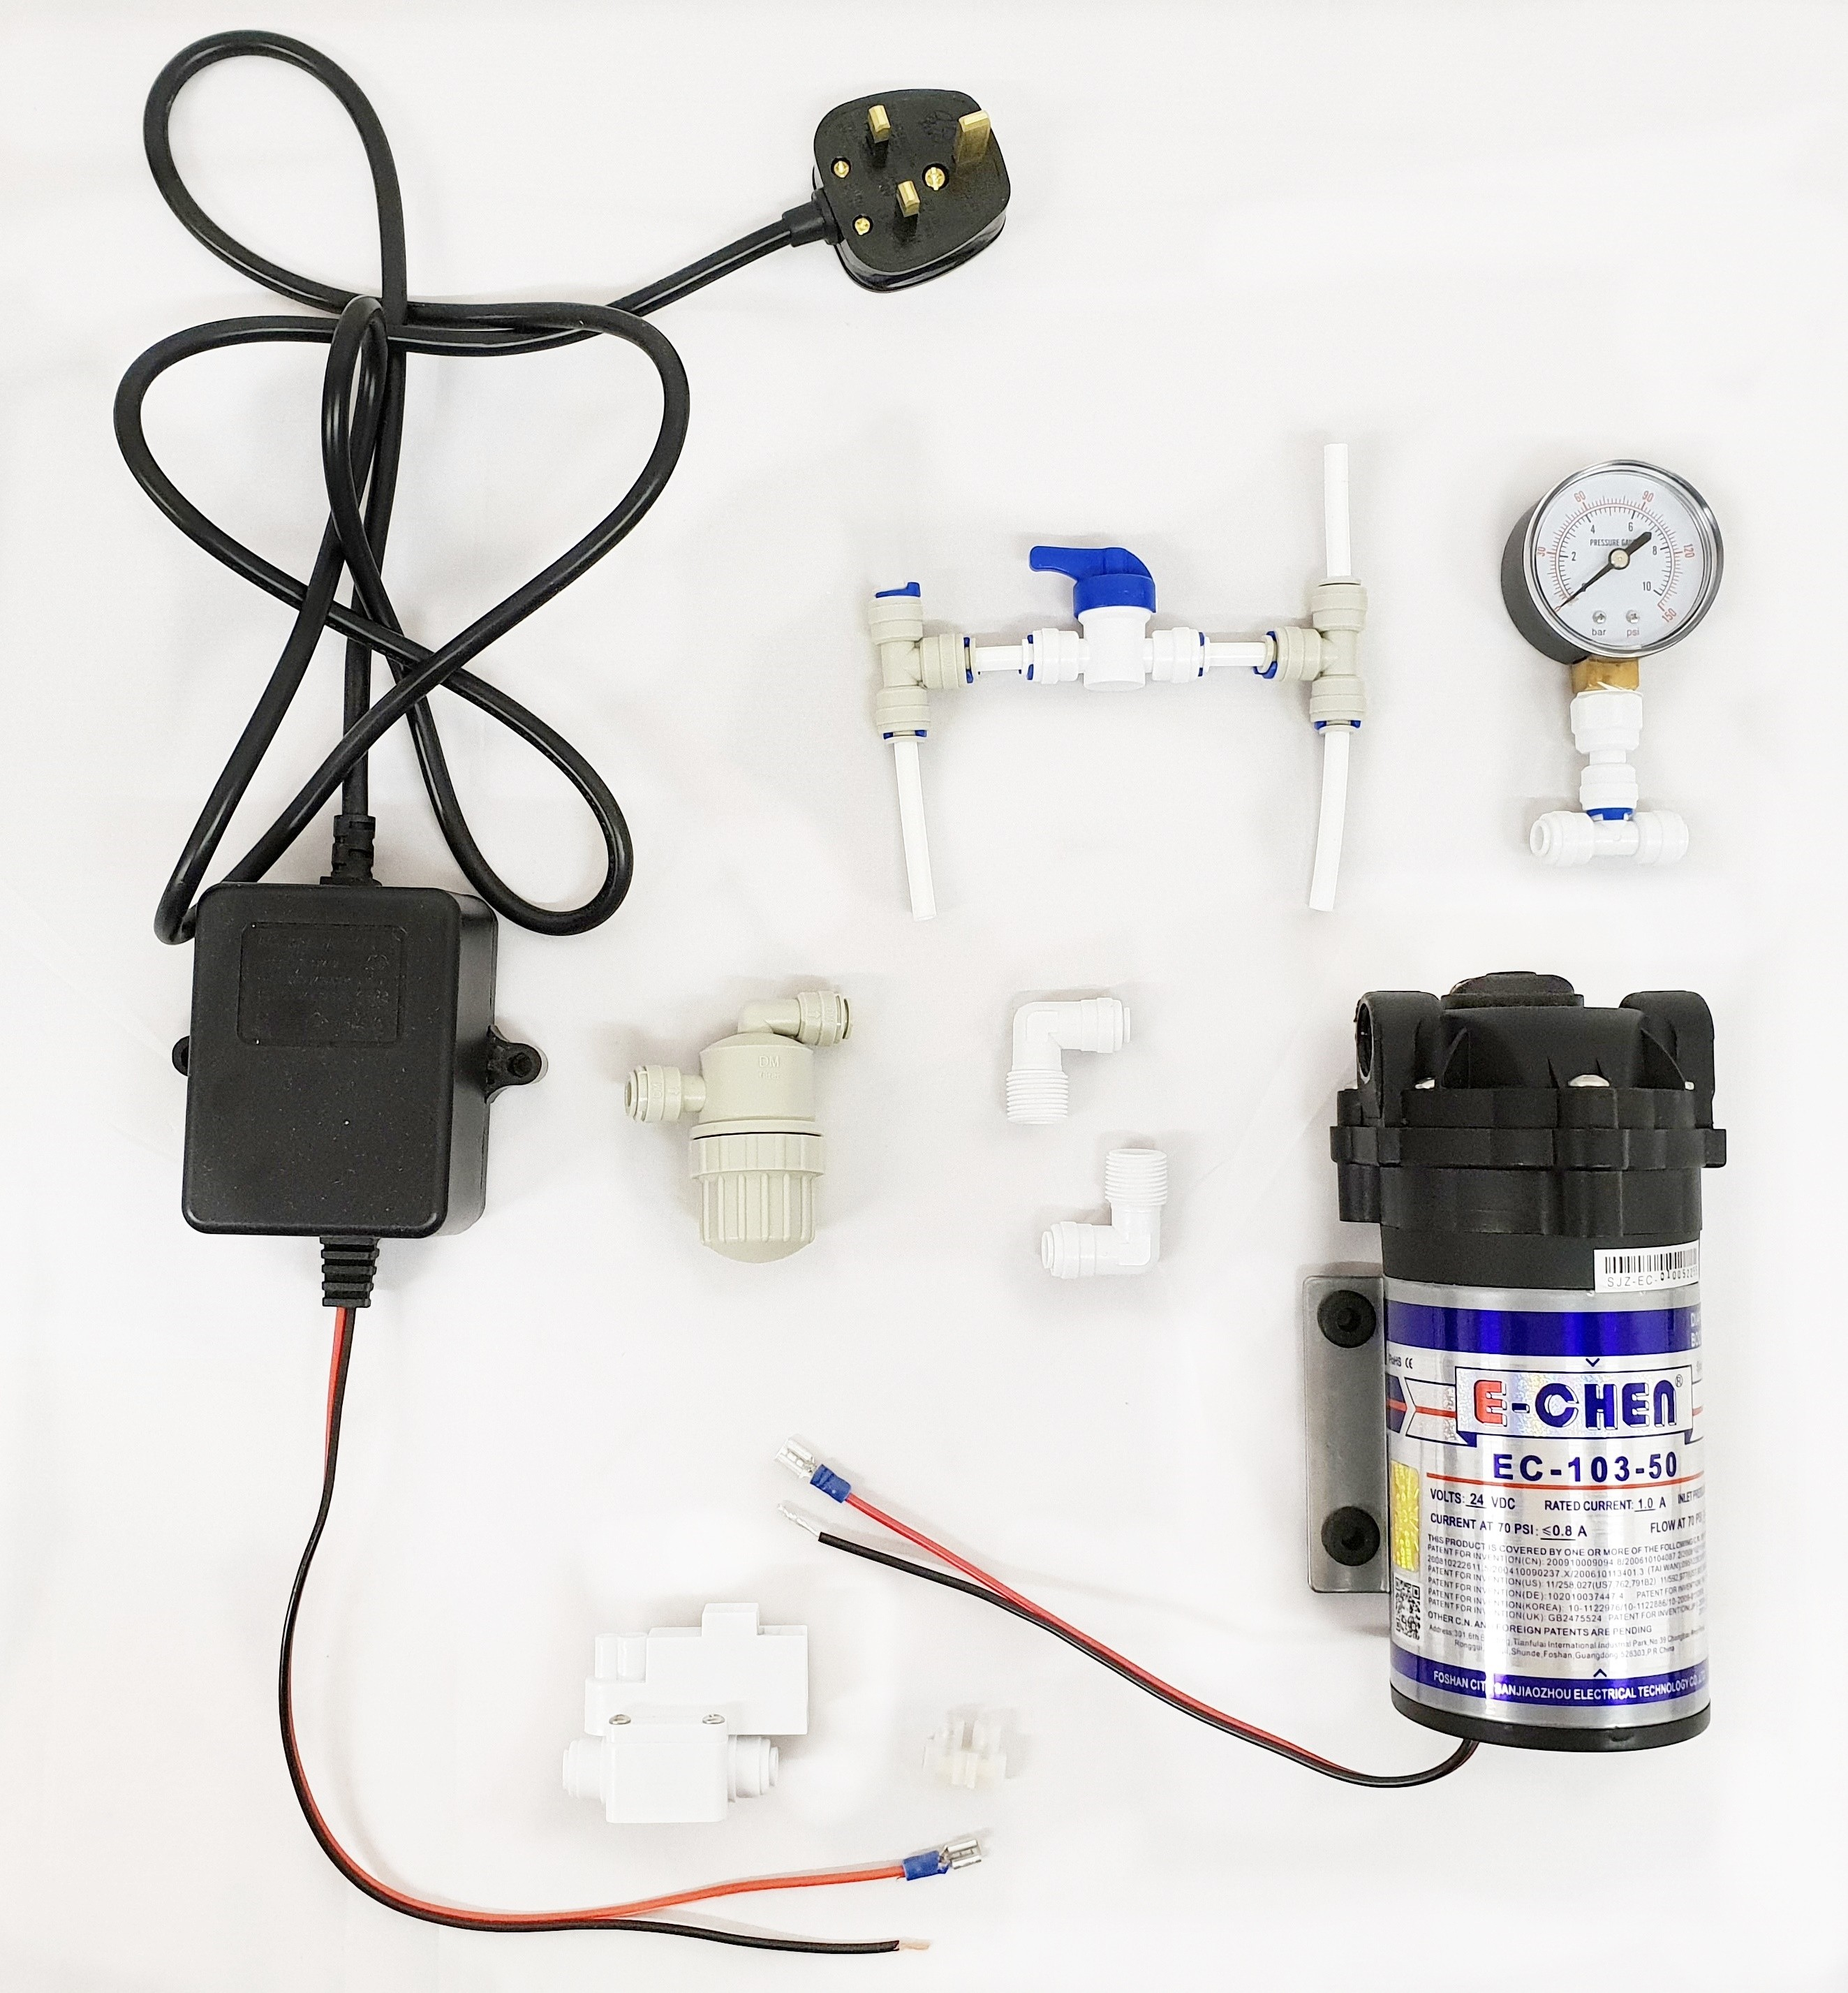 Finerfilters E-Chen Booster Pump Kit including Pump, Pressure Gauge and Pressure Switch (50GPD)